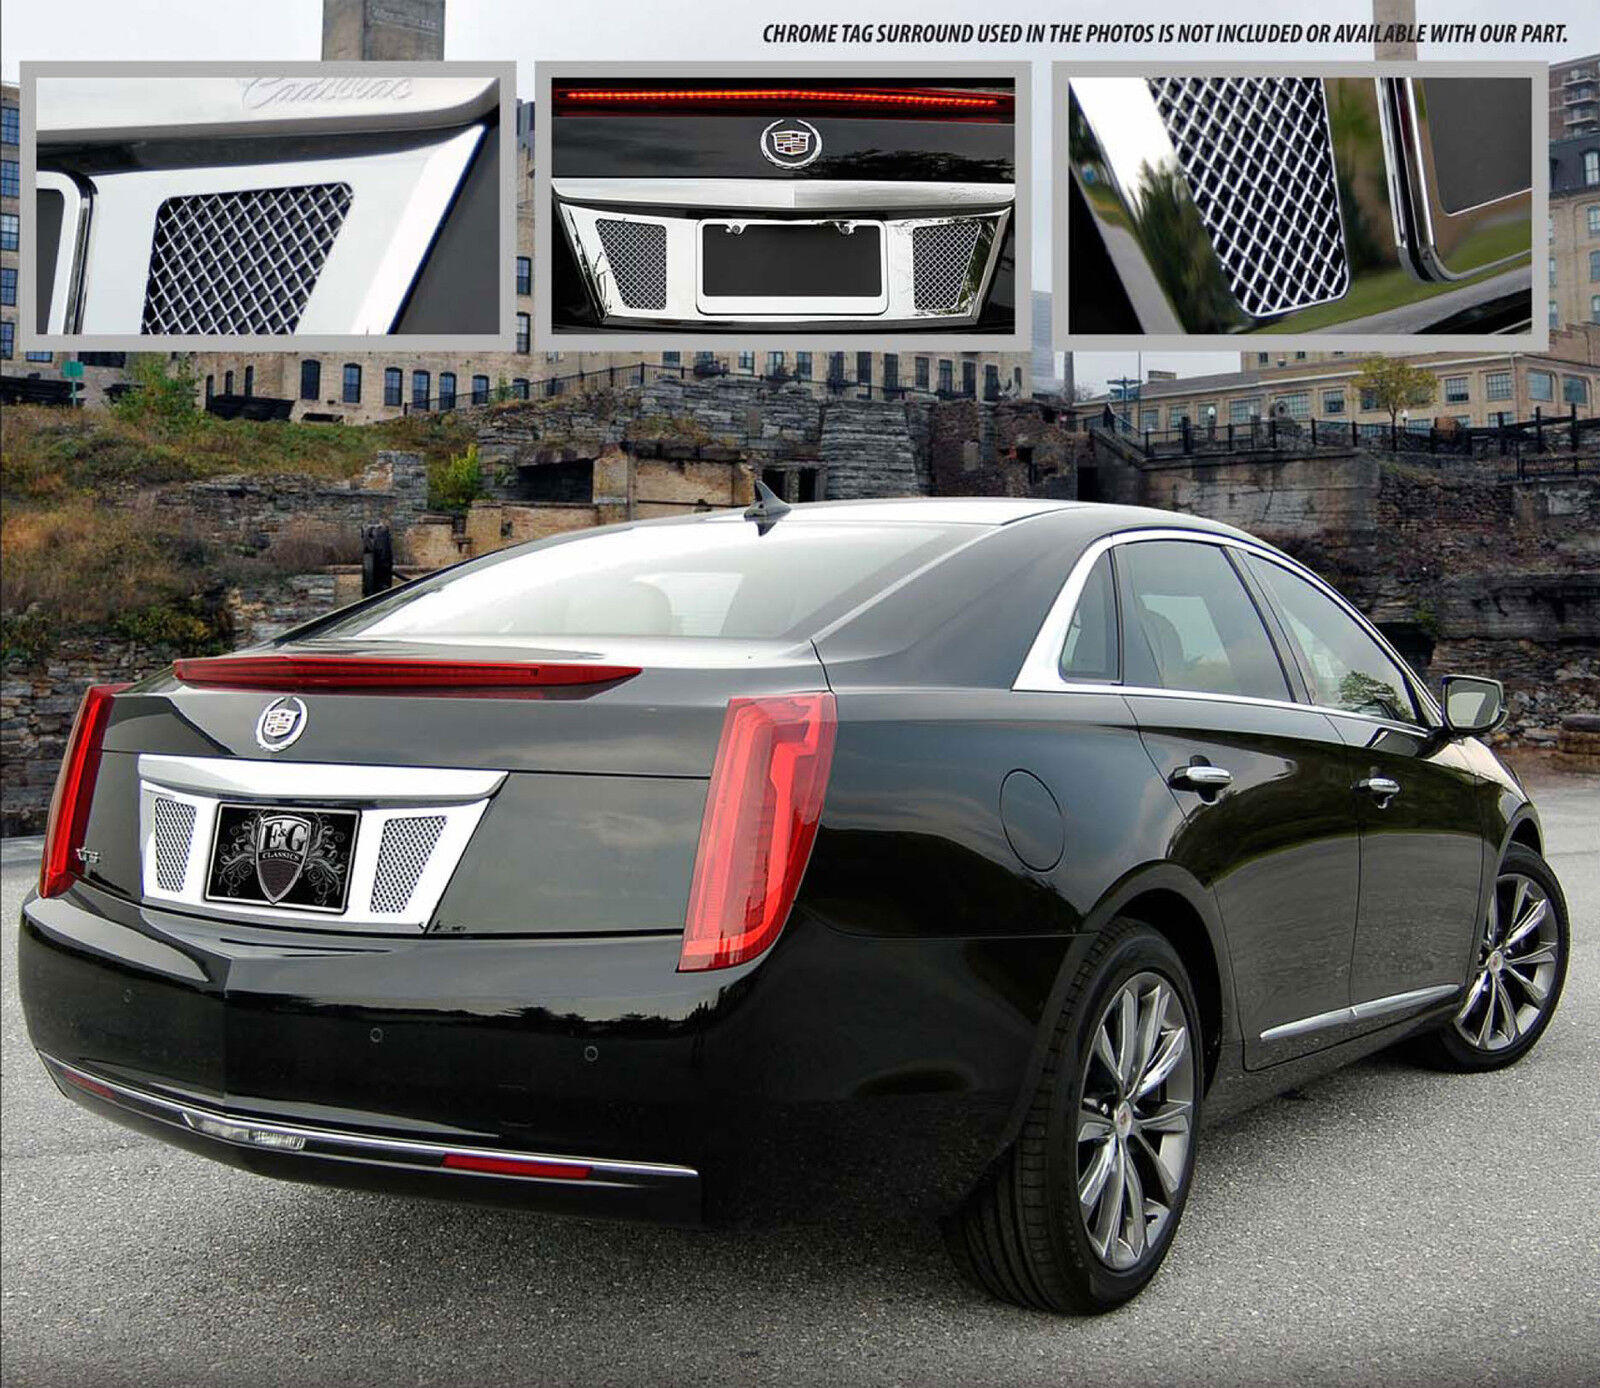 2013 2014 cadillac xts rear tag surround with mesh insert. Black Bedroom Furniture Sets. Home Design Ideas